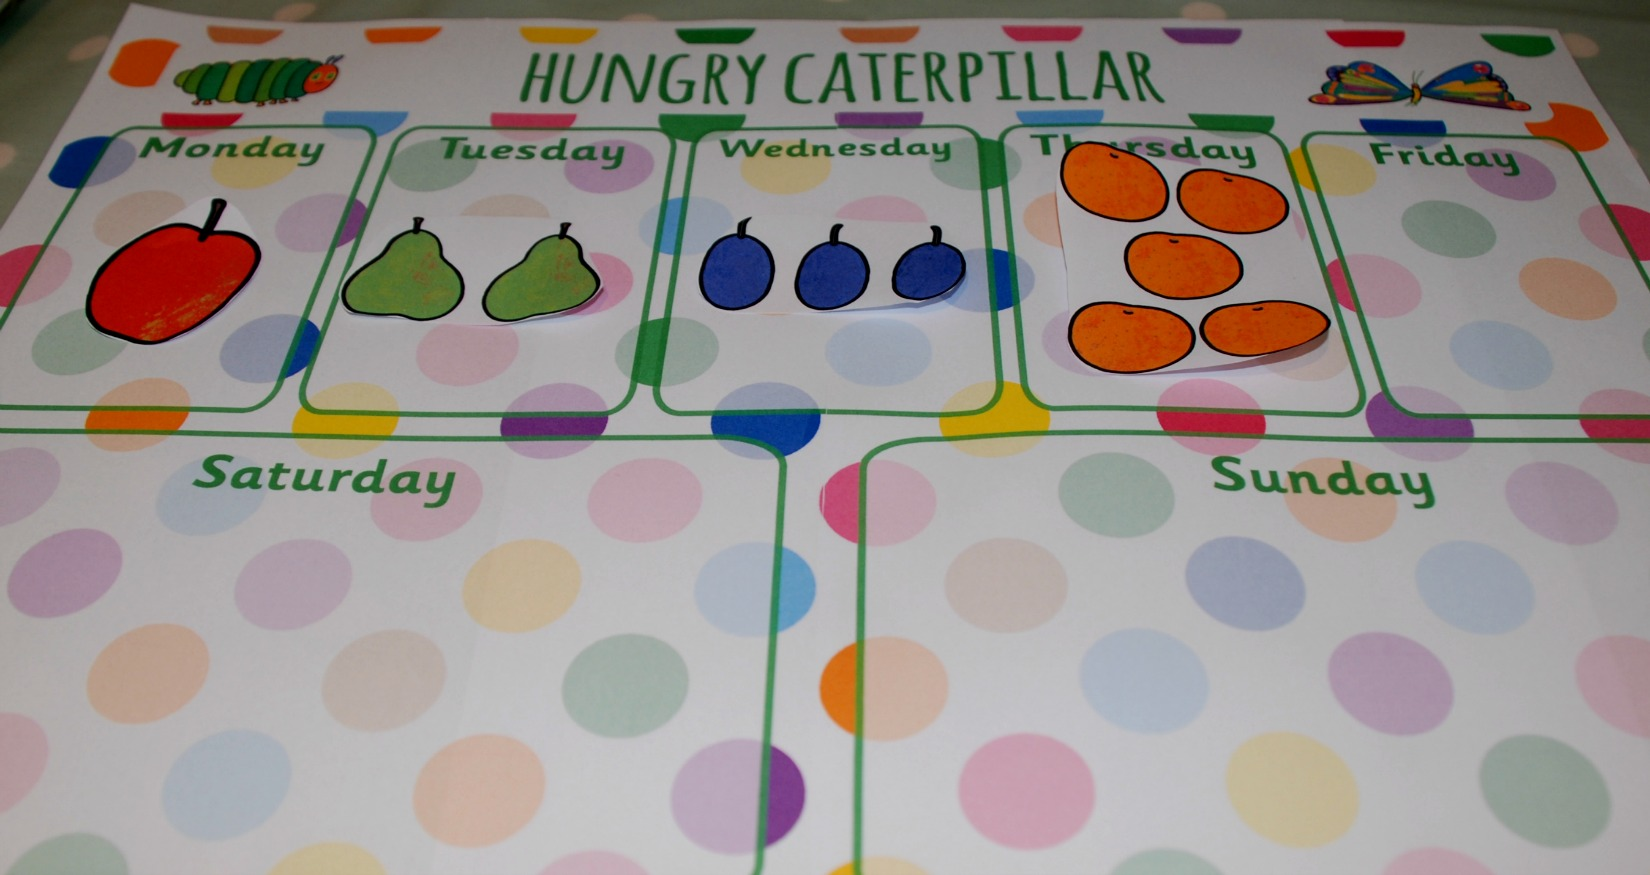 The very hungry caterpillar sorting activity